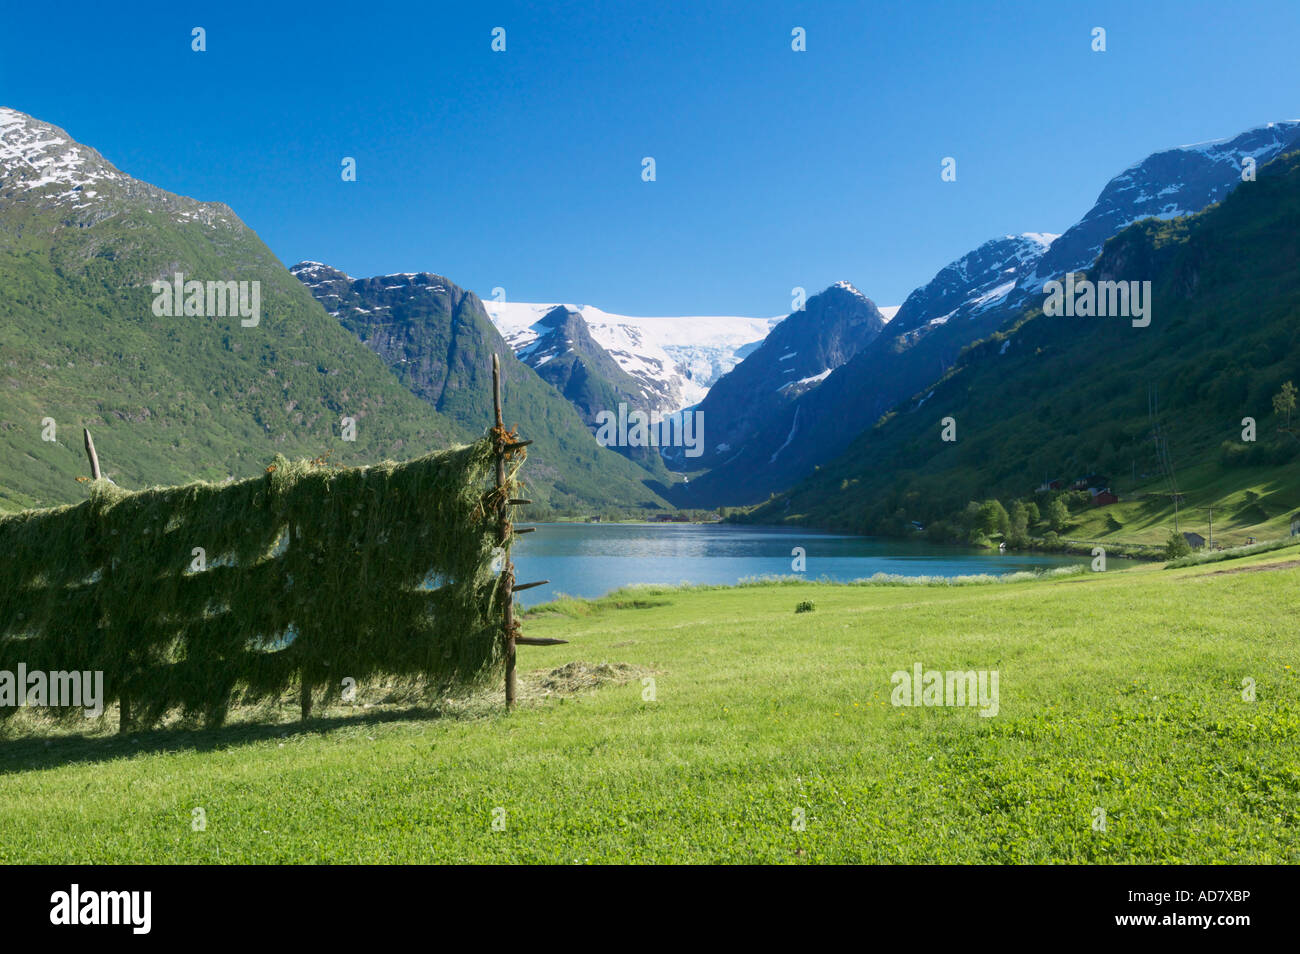 Hay drying on racks next to Oldevatnet Oldedalen near Olden Stryn Sogn og Fjordane Norway - Stock Image